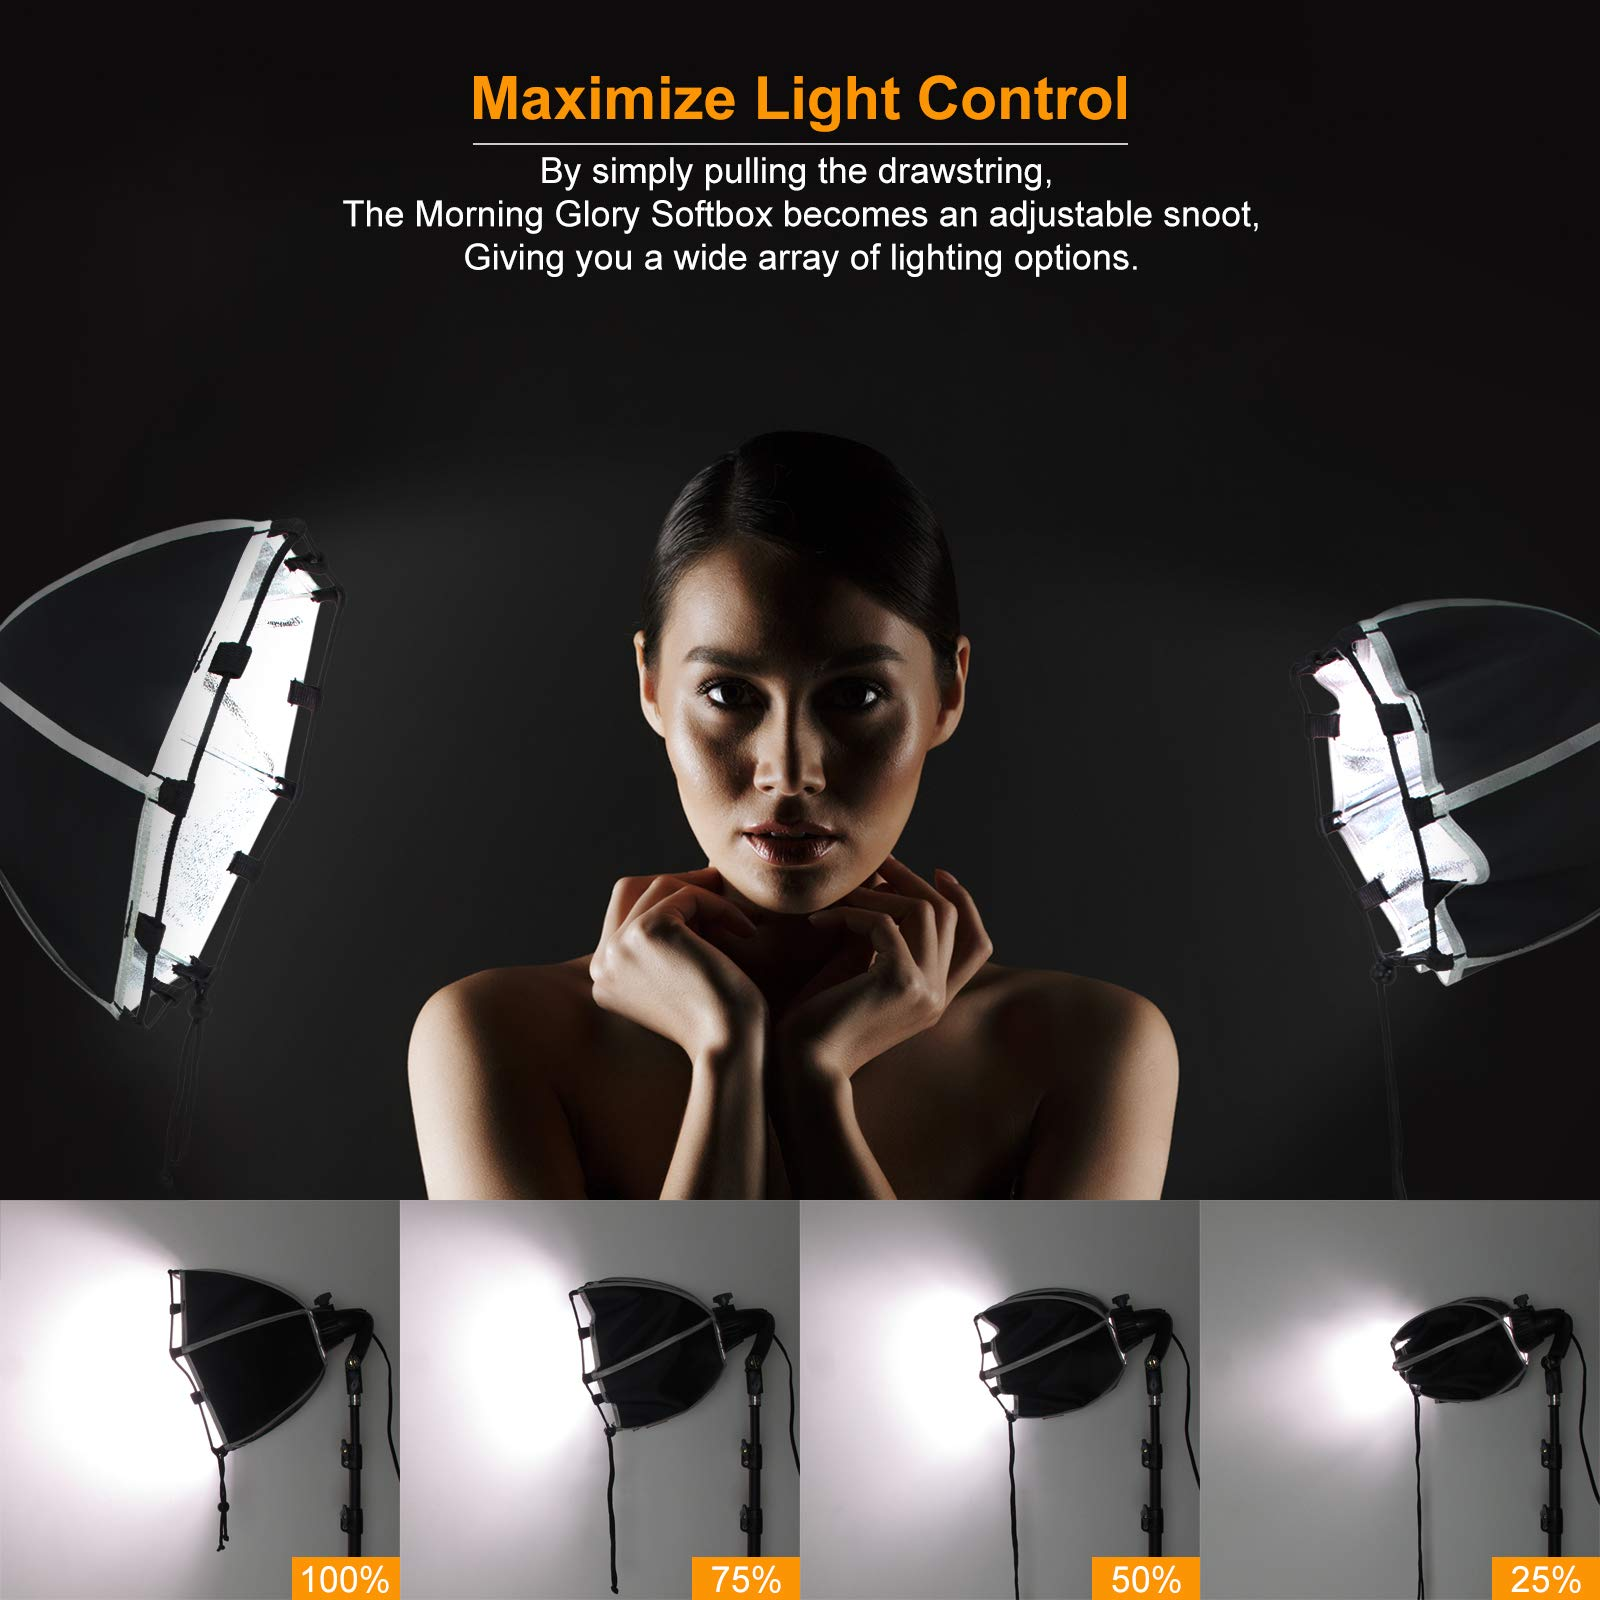 LINCO Lincostore Photography Studio Lighting Kit Arm for Video Continuous Lighting Shadow Boom Box Lights Set Headlight Softbox Setup with Daylight Bulbs 2400 Lumens AM261 by Linco (Image #3)